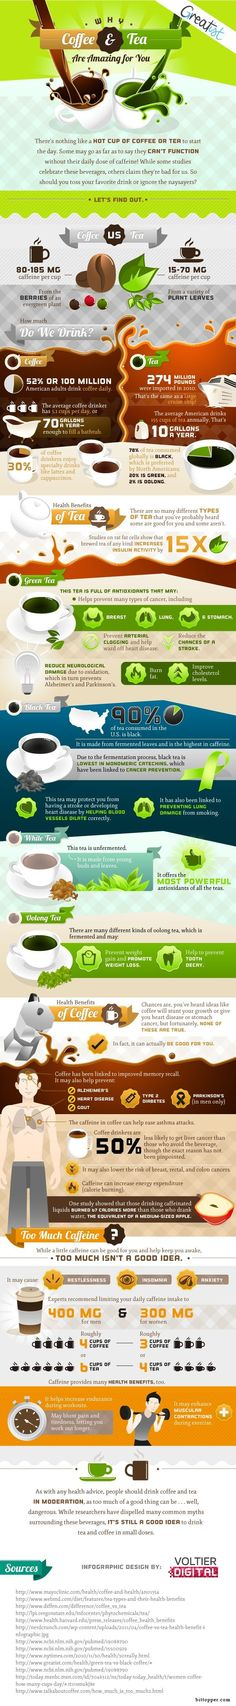 Awesome info graphic about the health benefits of coffee & tea via www.bittopper.com/post.php?id=16861251395271a1279f6da7.65903738